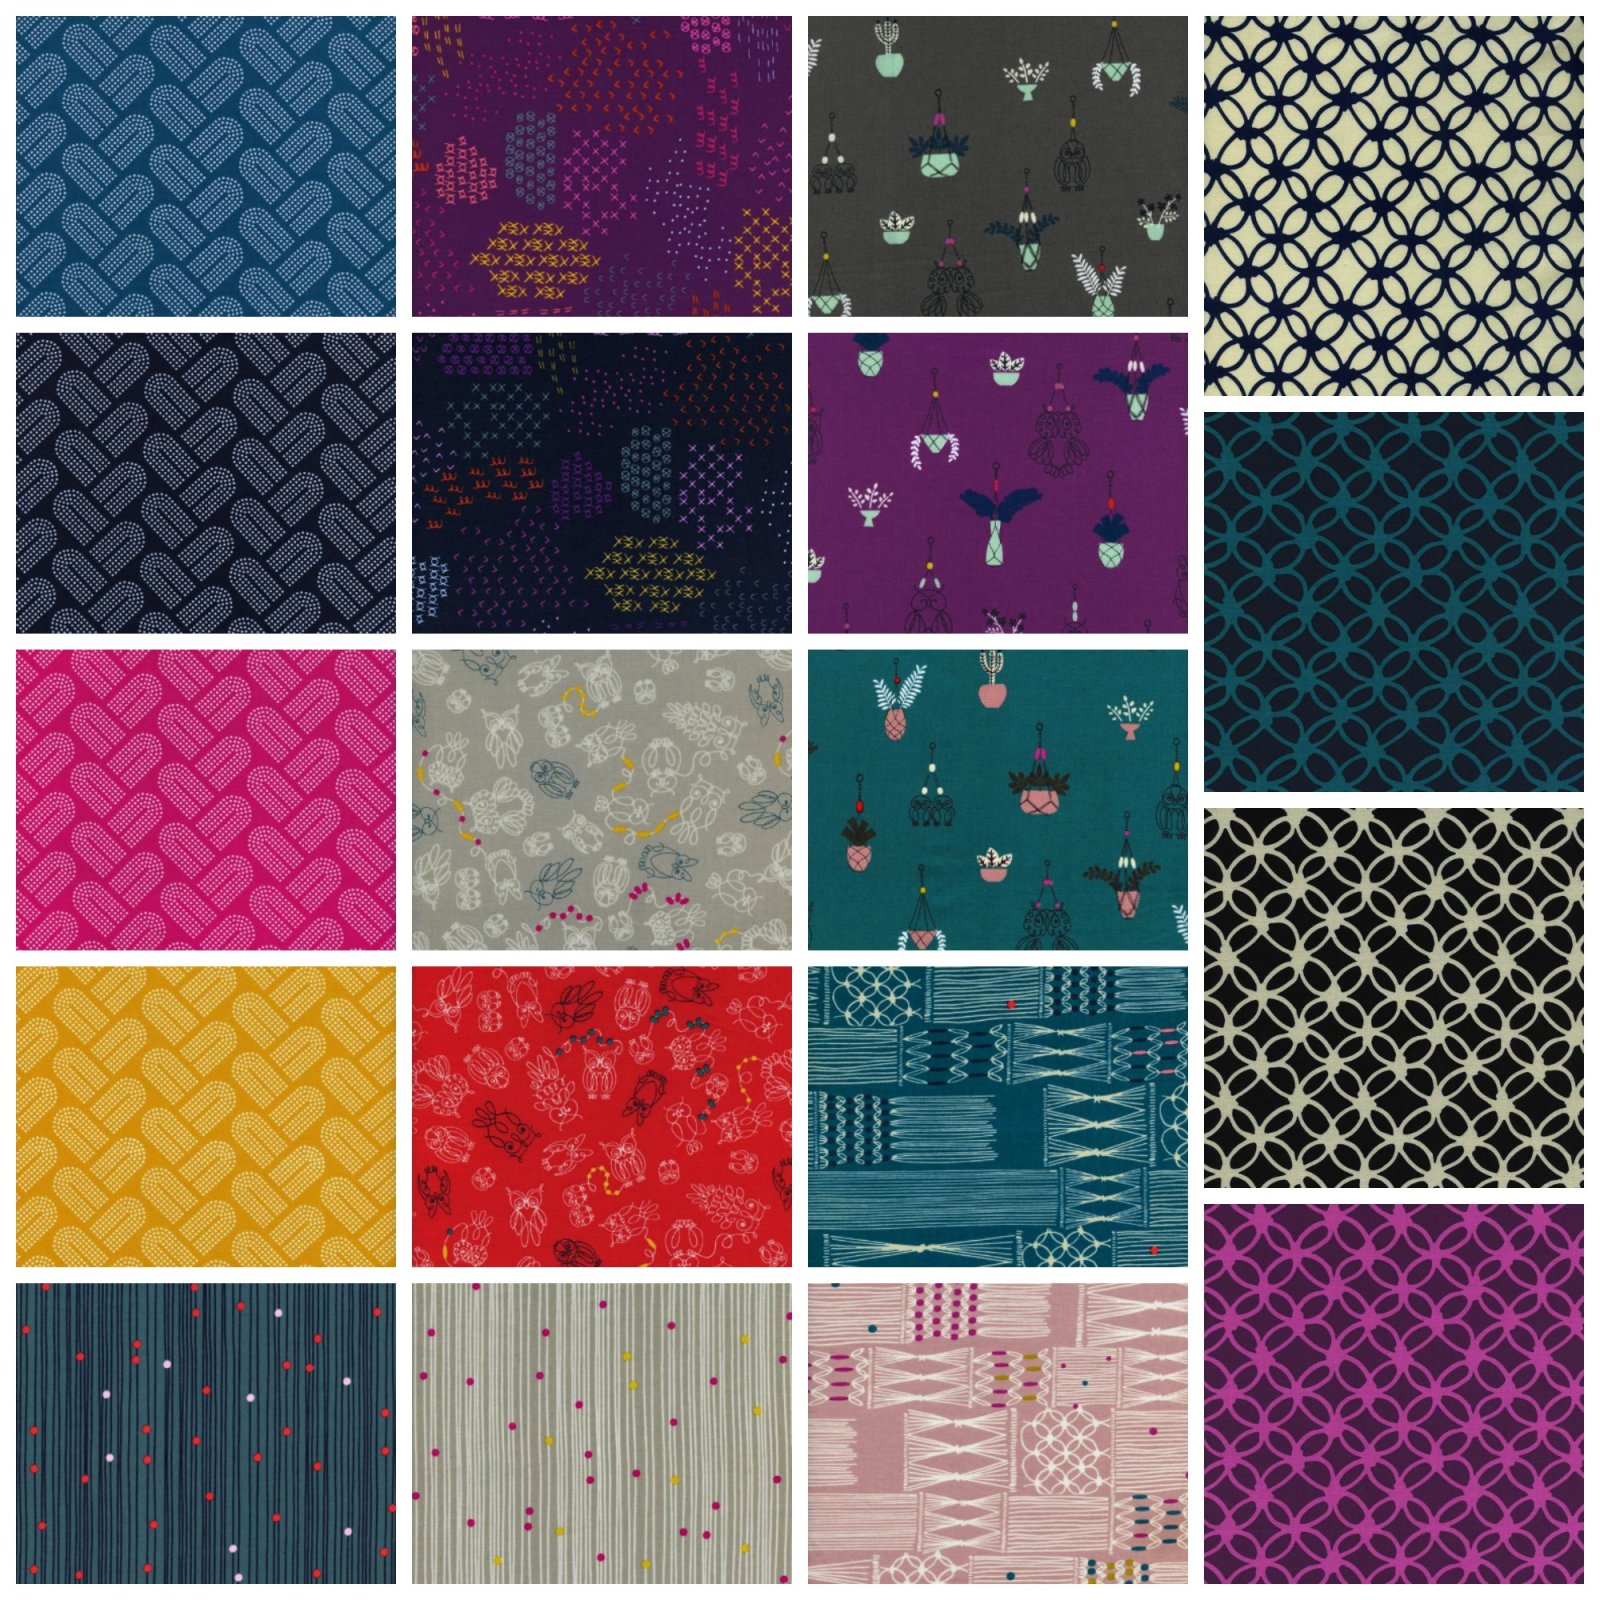 Cotton + Steel - Macrame - Fat Quarter Bundle (19 FQs)